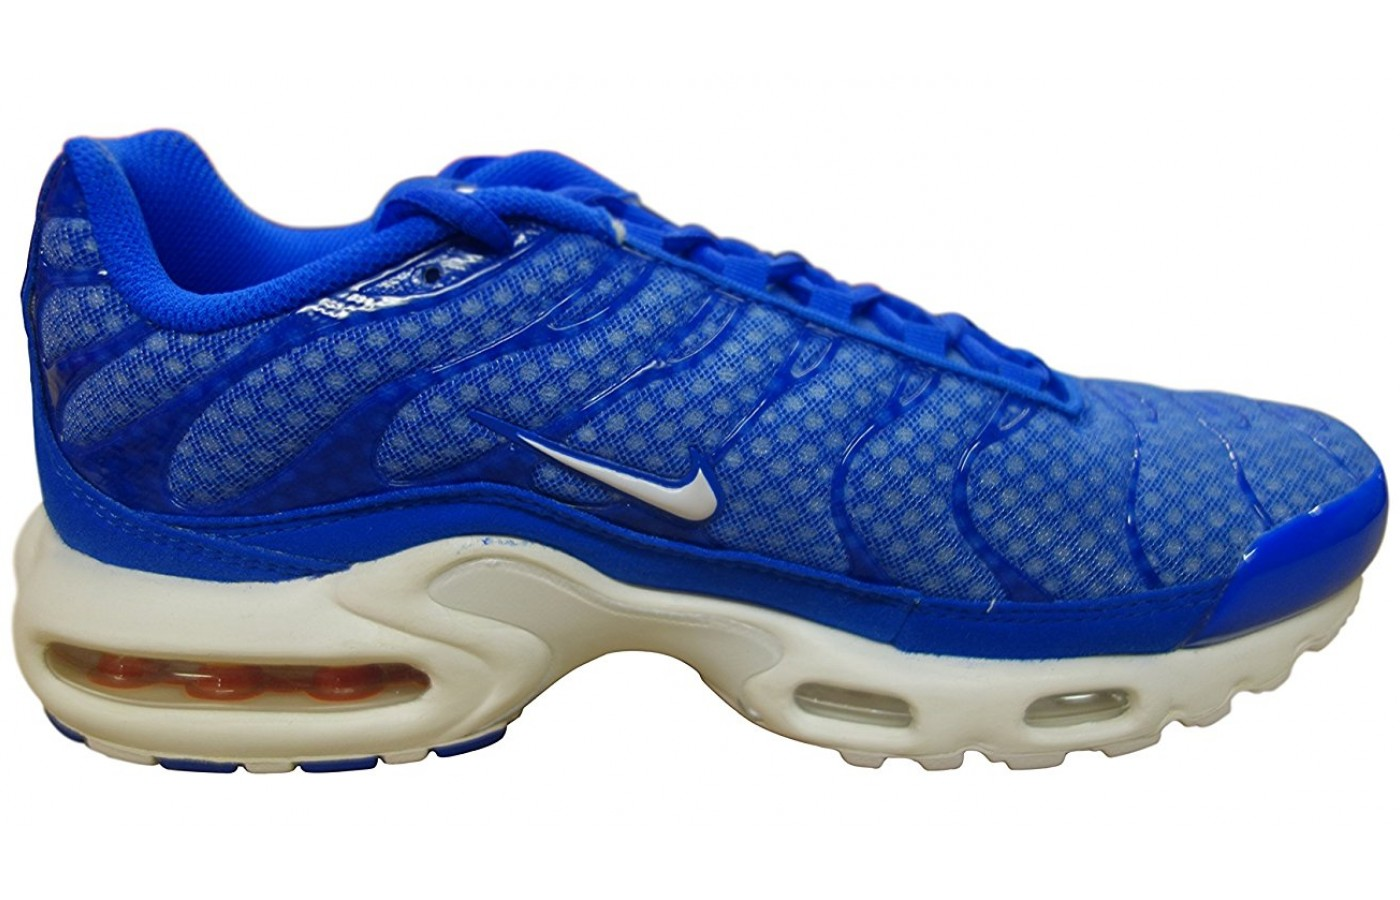 A side view of the Nike Air Max Plus shoe